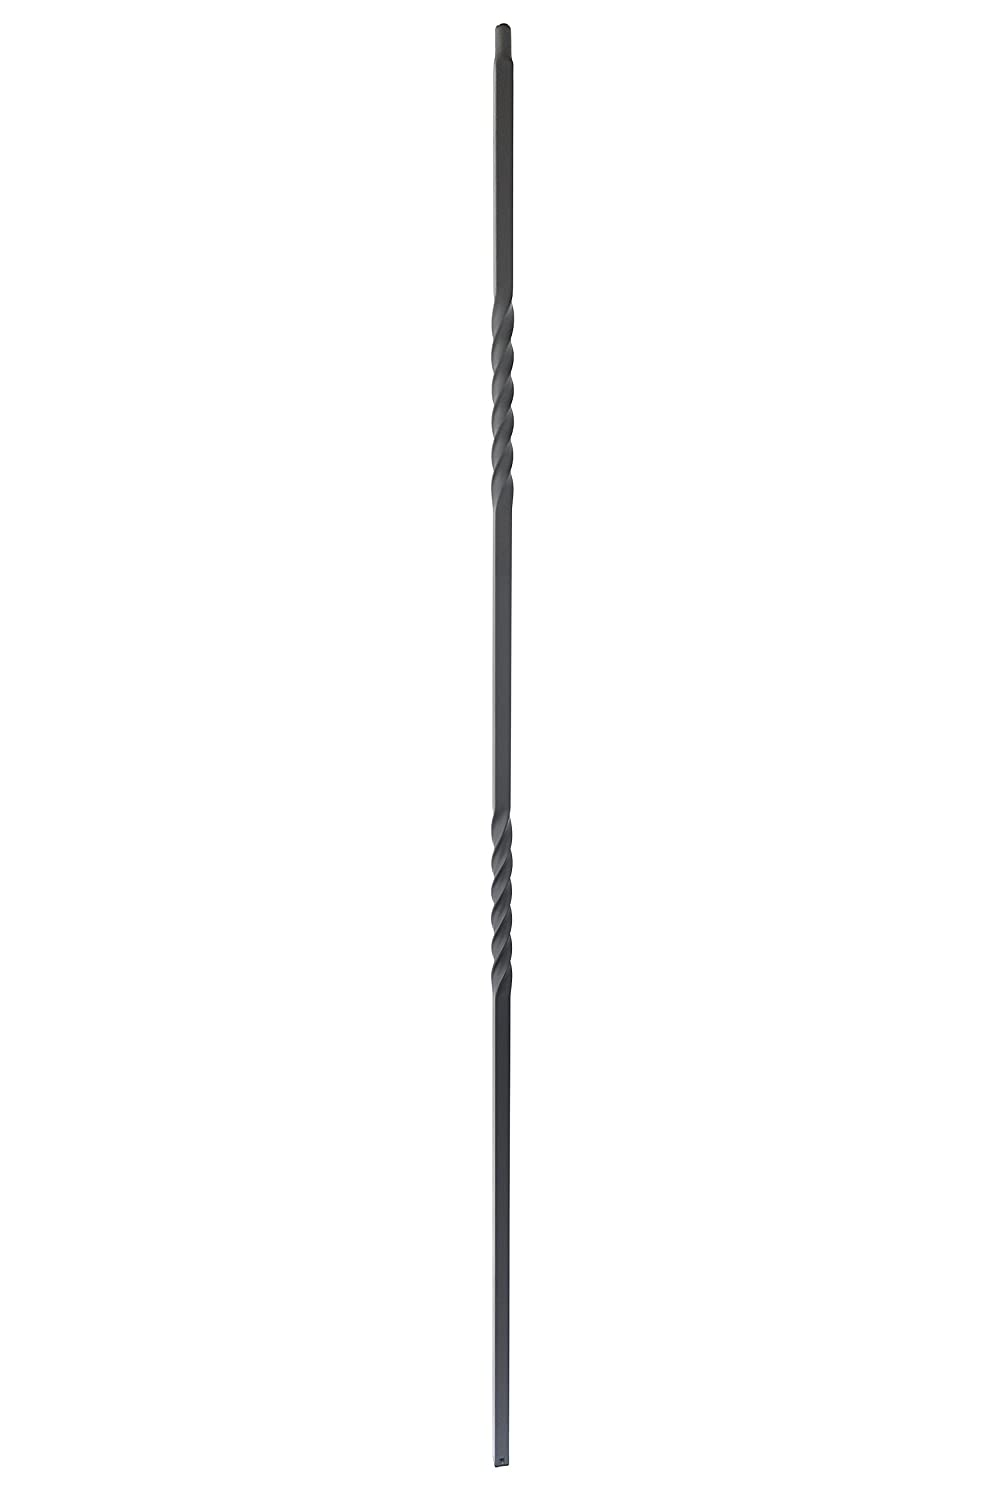 Hollow 44 Tall 1//2 Square Box of 15 Satin Black Iron Balusters Double Twist